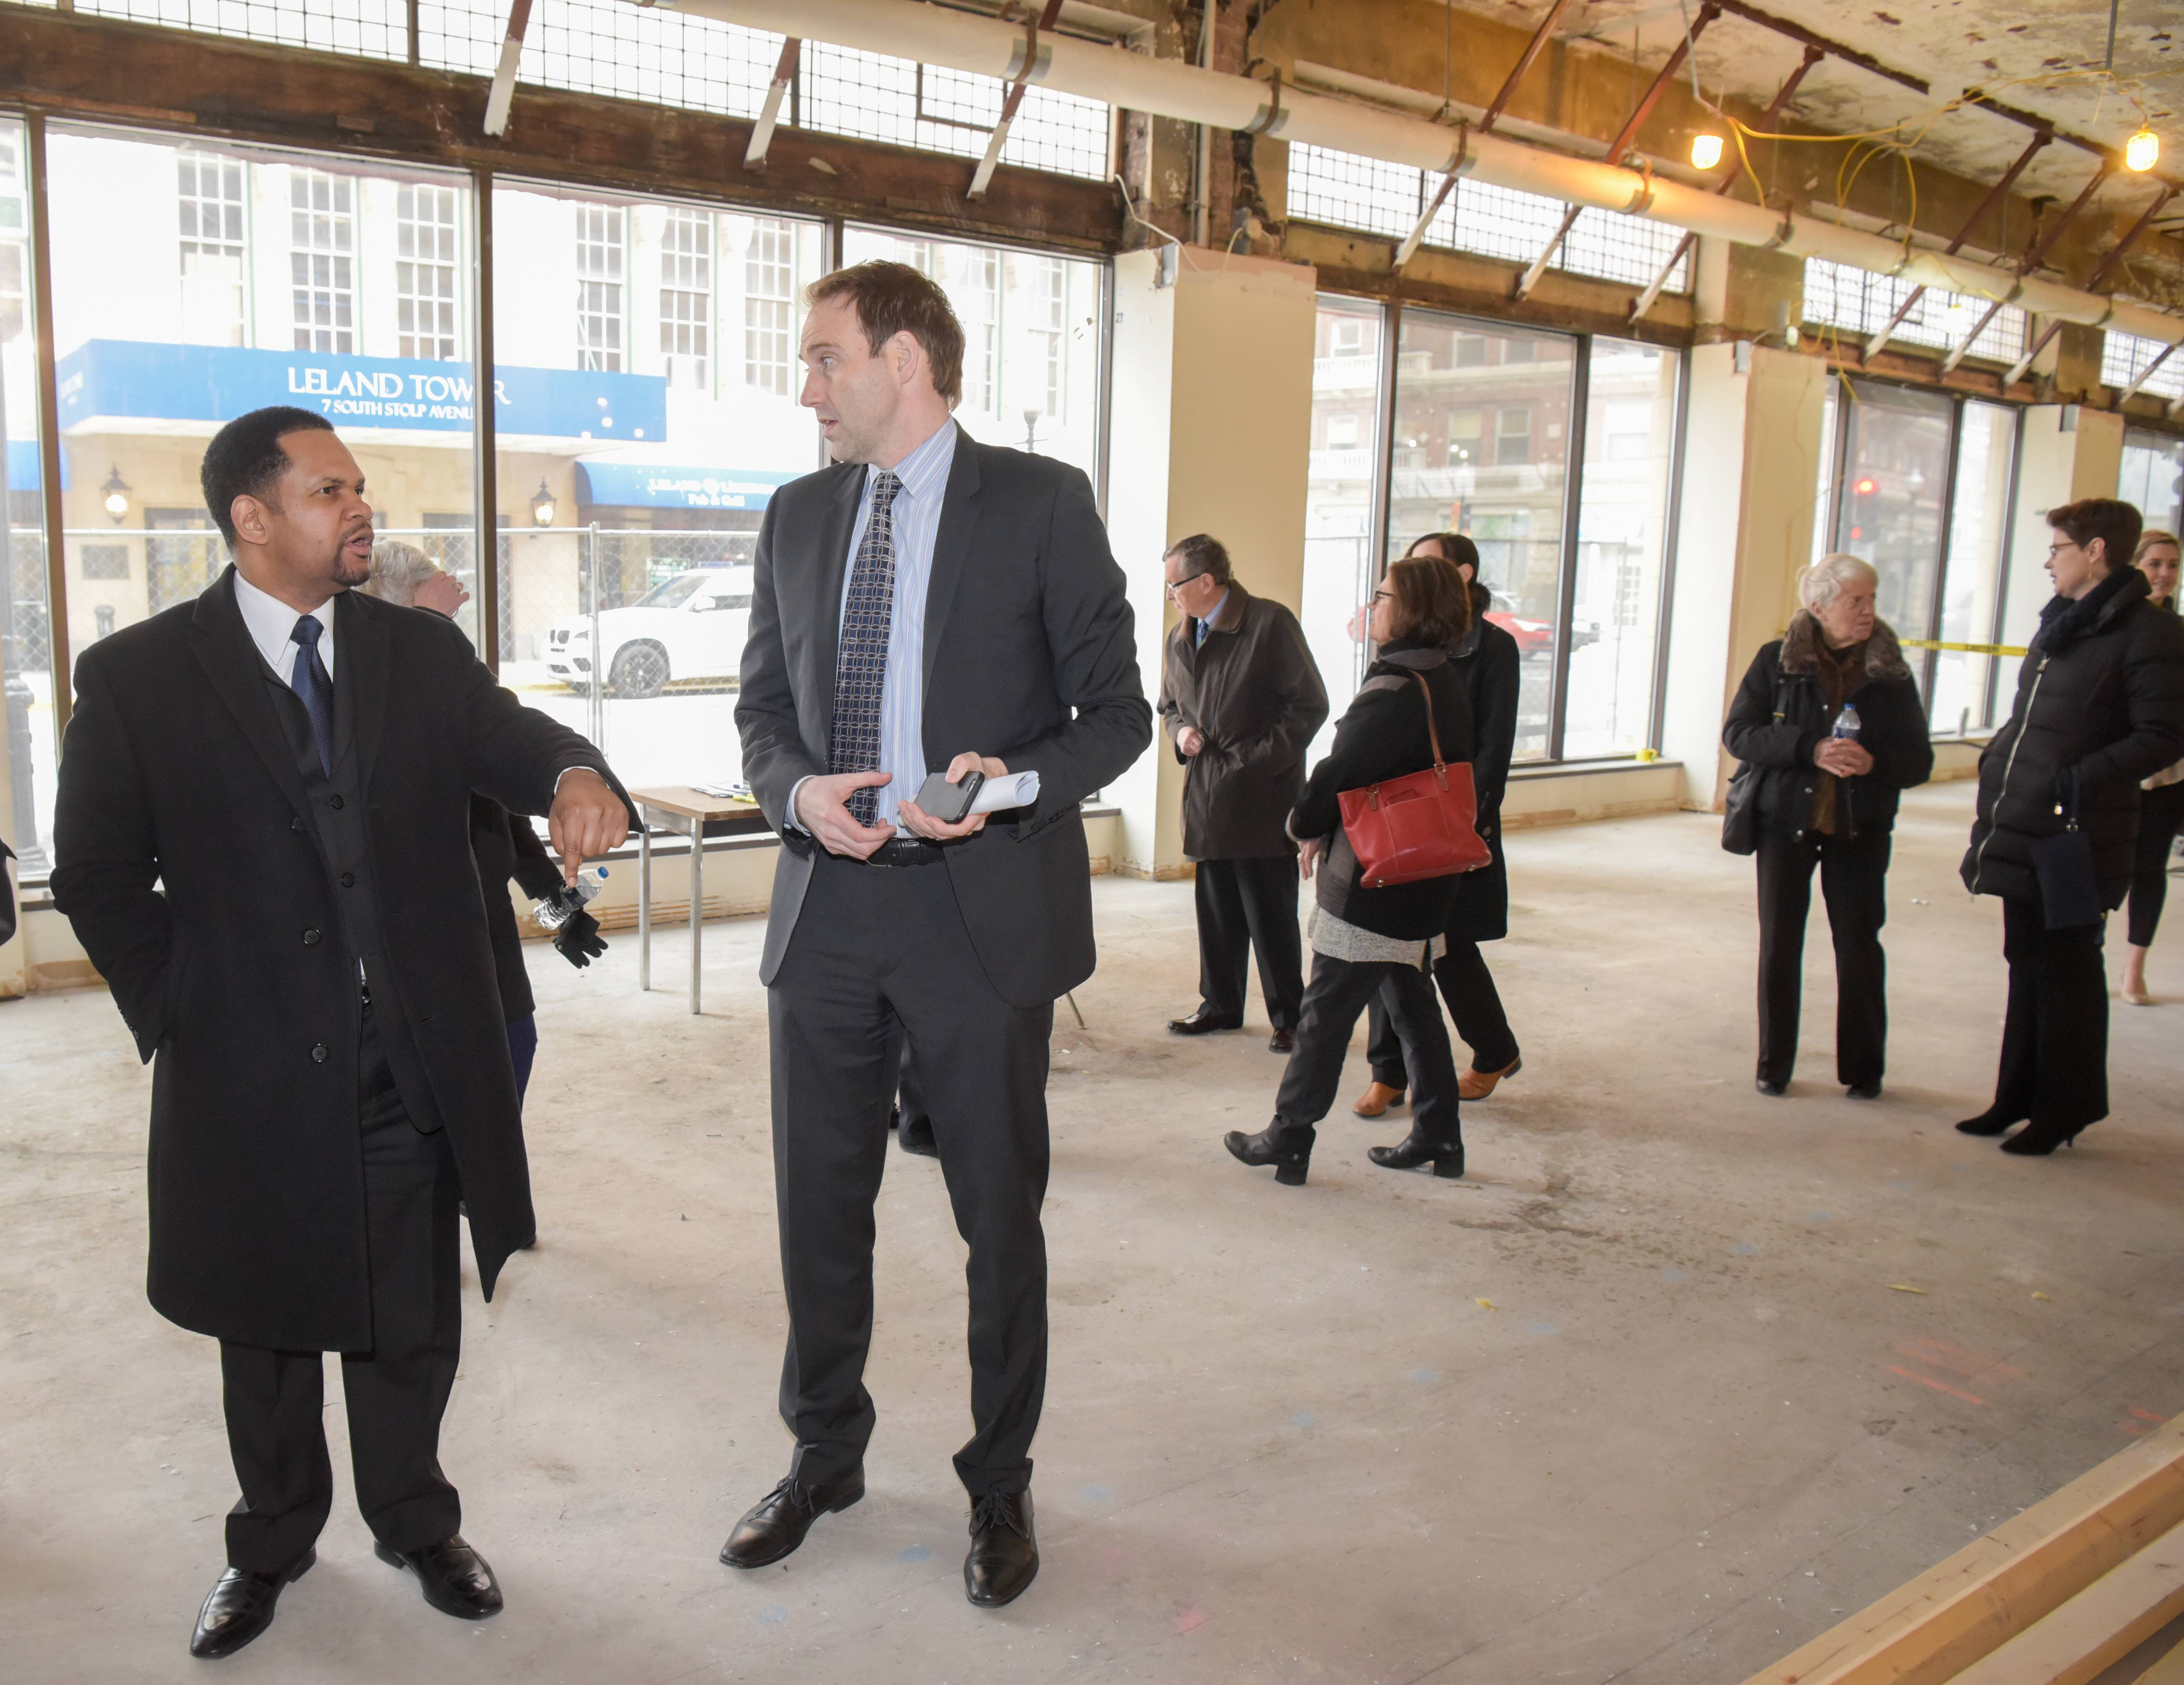 Aurora Mayor Richard Irvin, left, tours the future John C. Dunham Aurora Arts Center on Monday as construction begins on a $35 million project to turn the building next to the Paramount Theatre into a rehearsal space, arts education center, restaurant and apartments for artists.